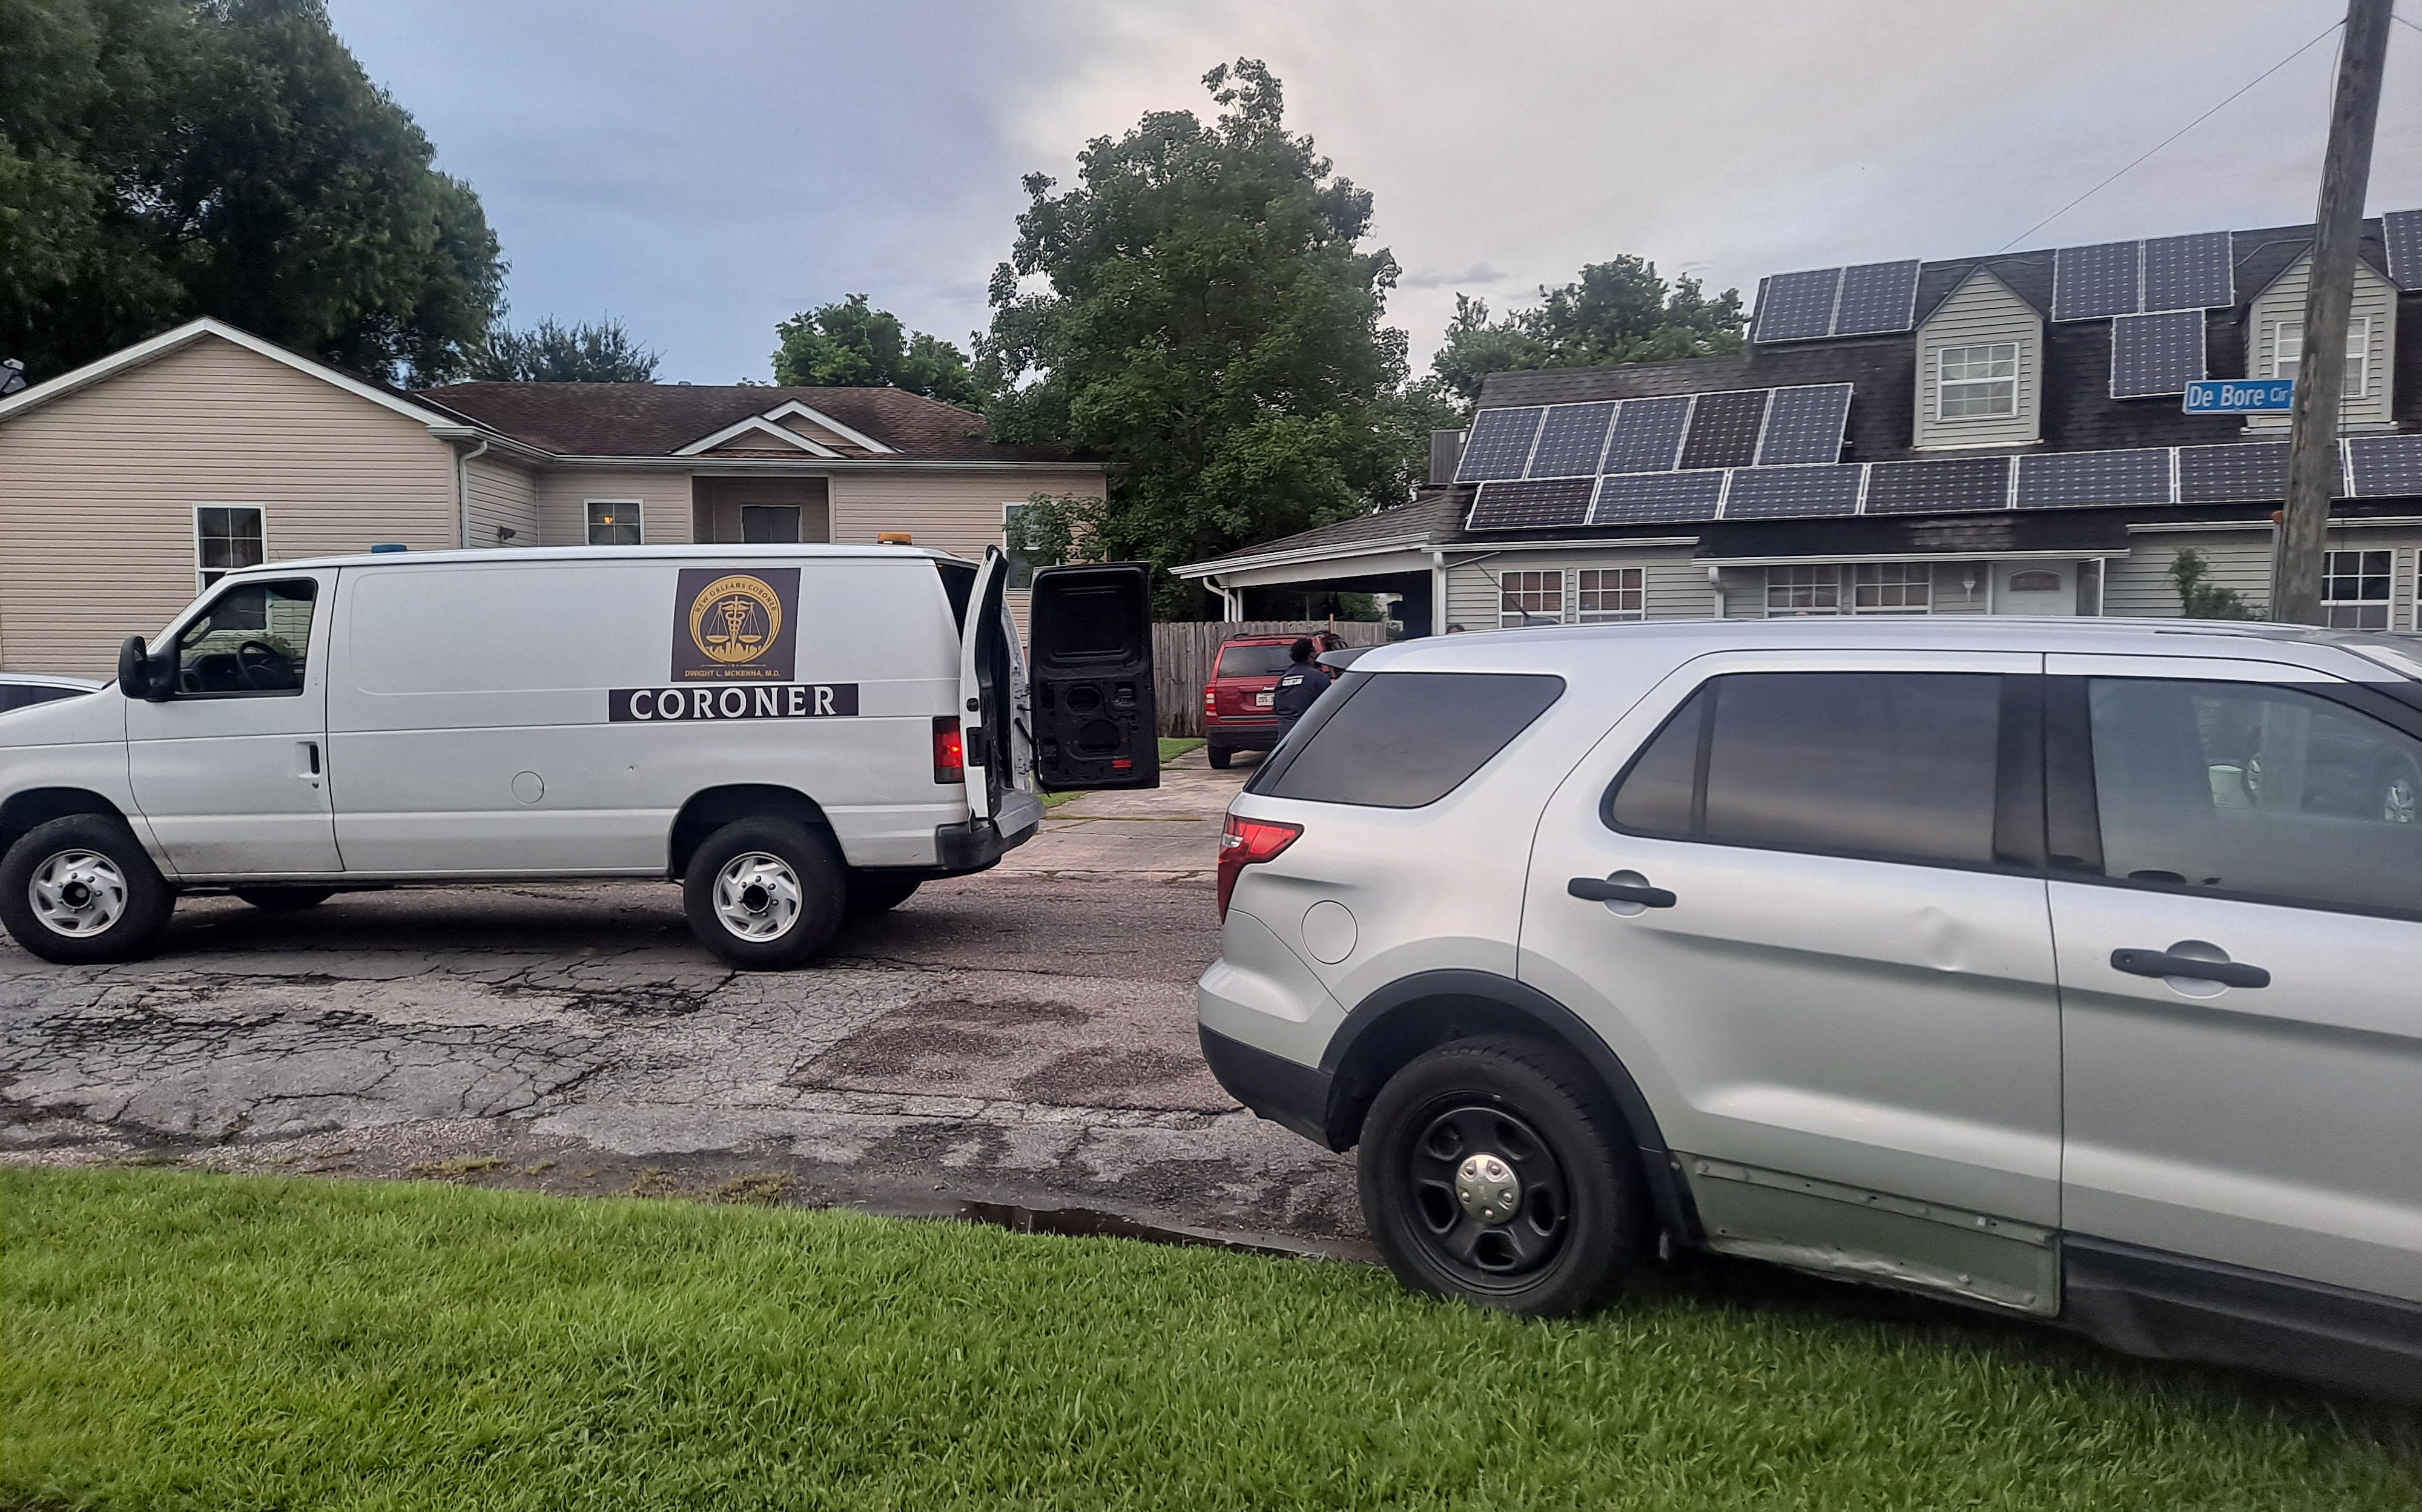 Homicide by cutting in Gentilly Woods